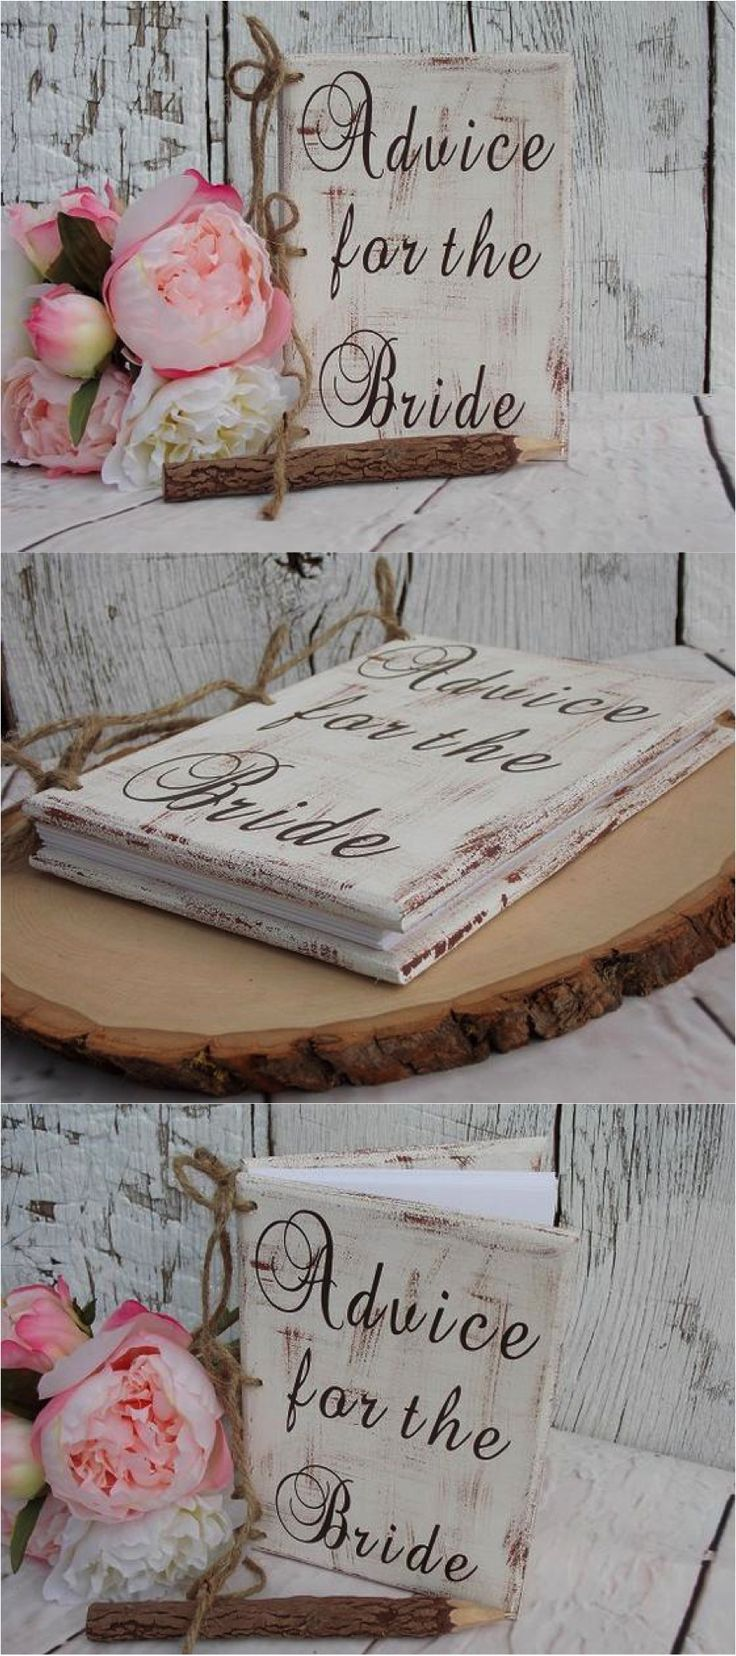 bridal shower keepsake book%0A Rustic Chic Advice for the Bride Book   Great idea for a Bridal Shower